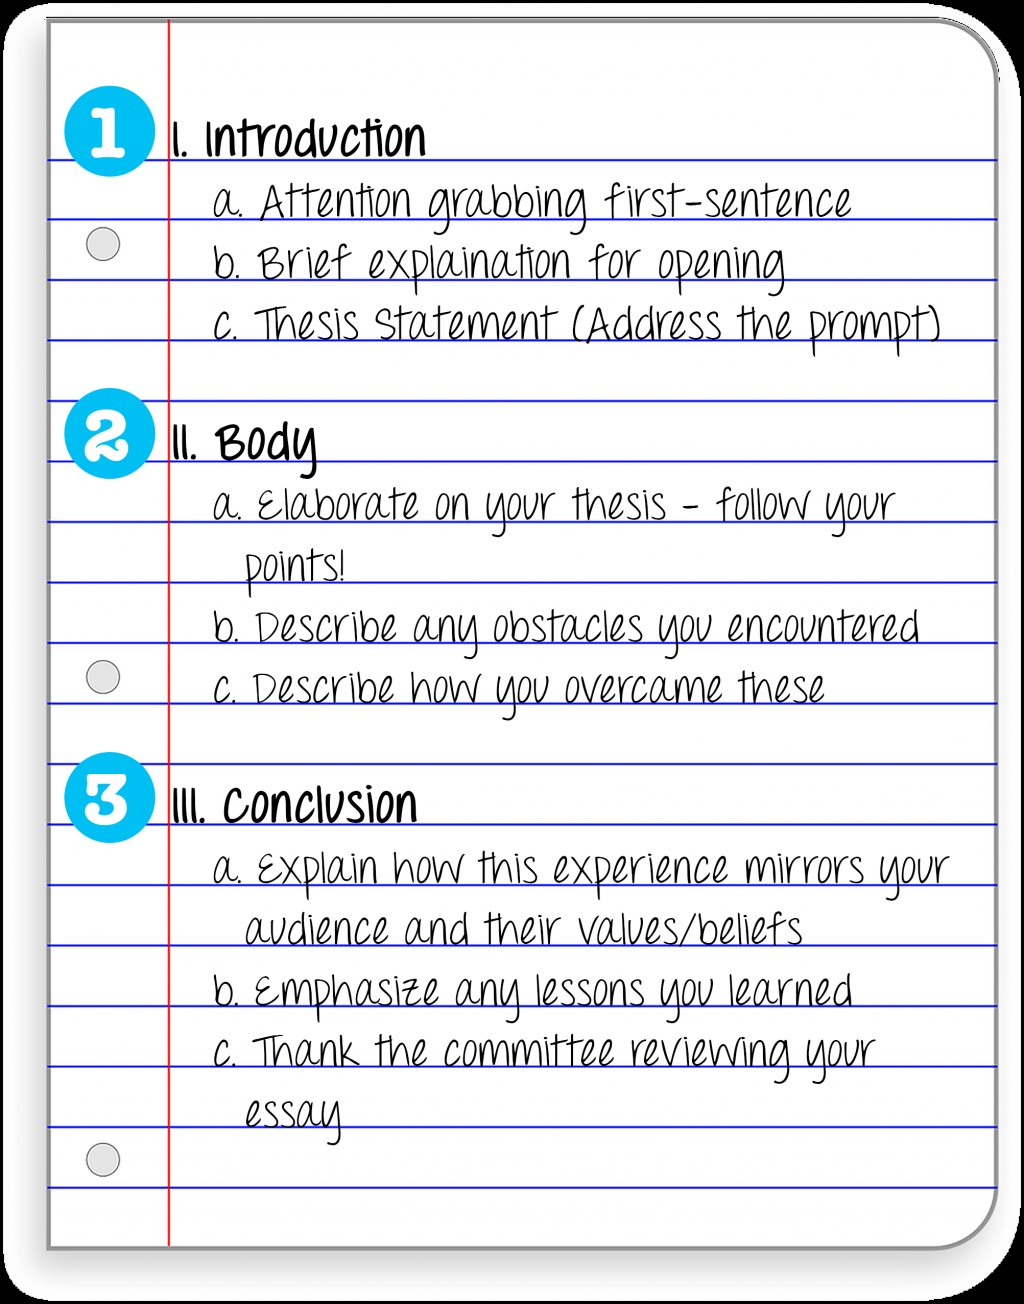 003 Essay Example Steps To Writing An Stunning 4th Grade Middle School Conclusion Large